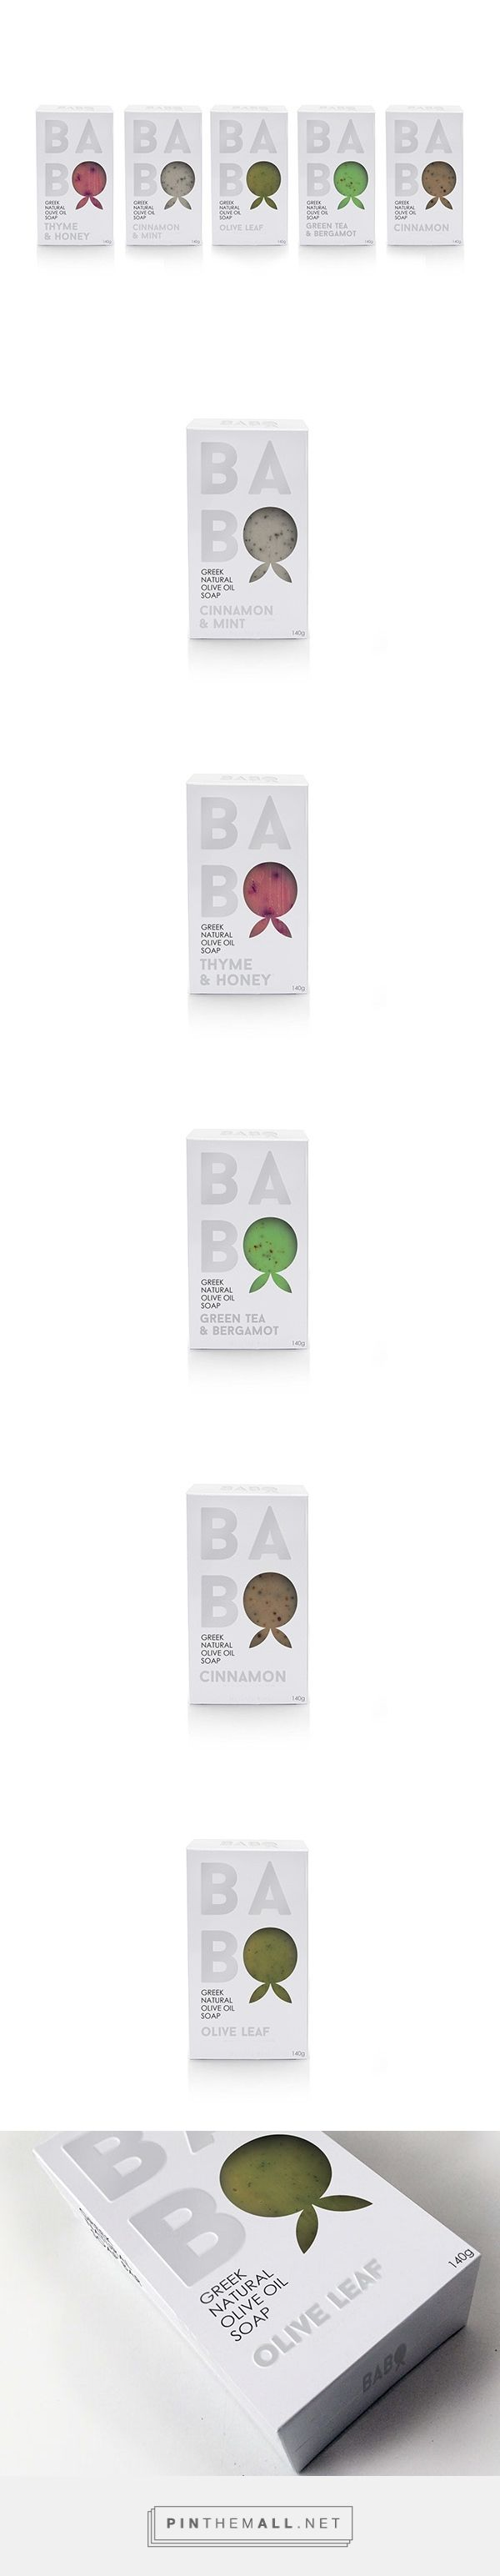 Babo Soap // Babo is a greek new product with natural olive oil soaps.